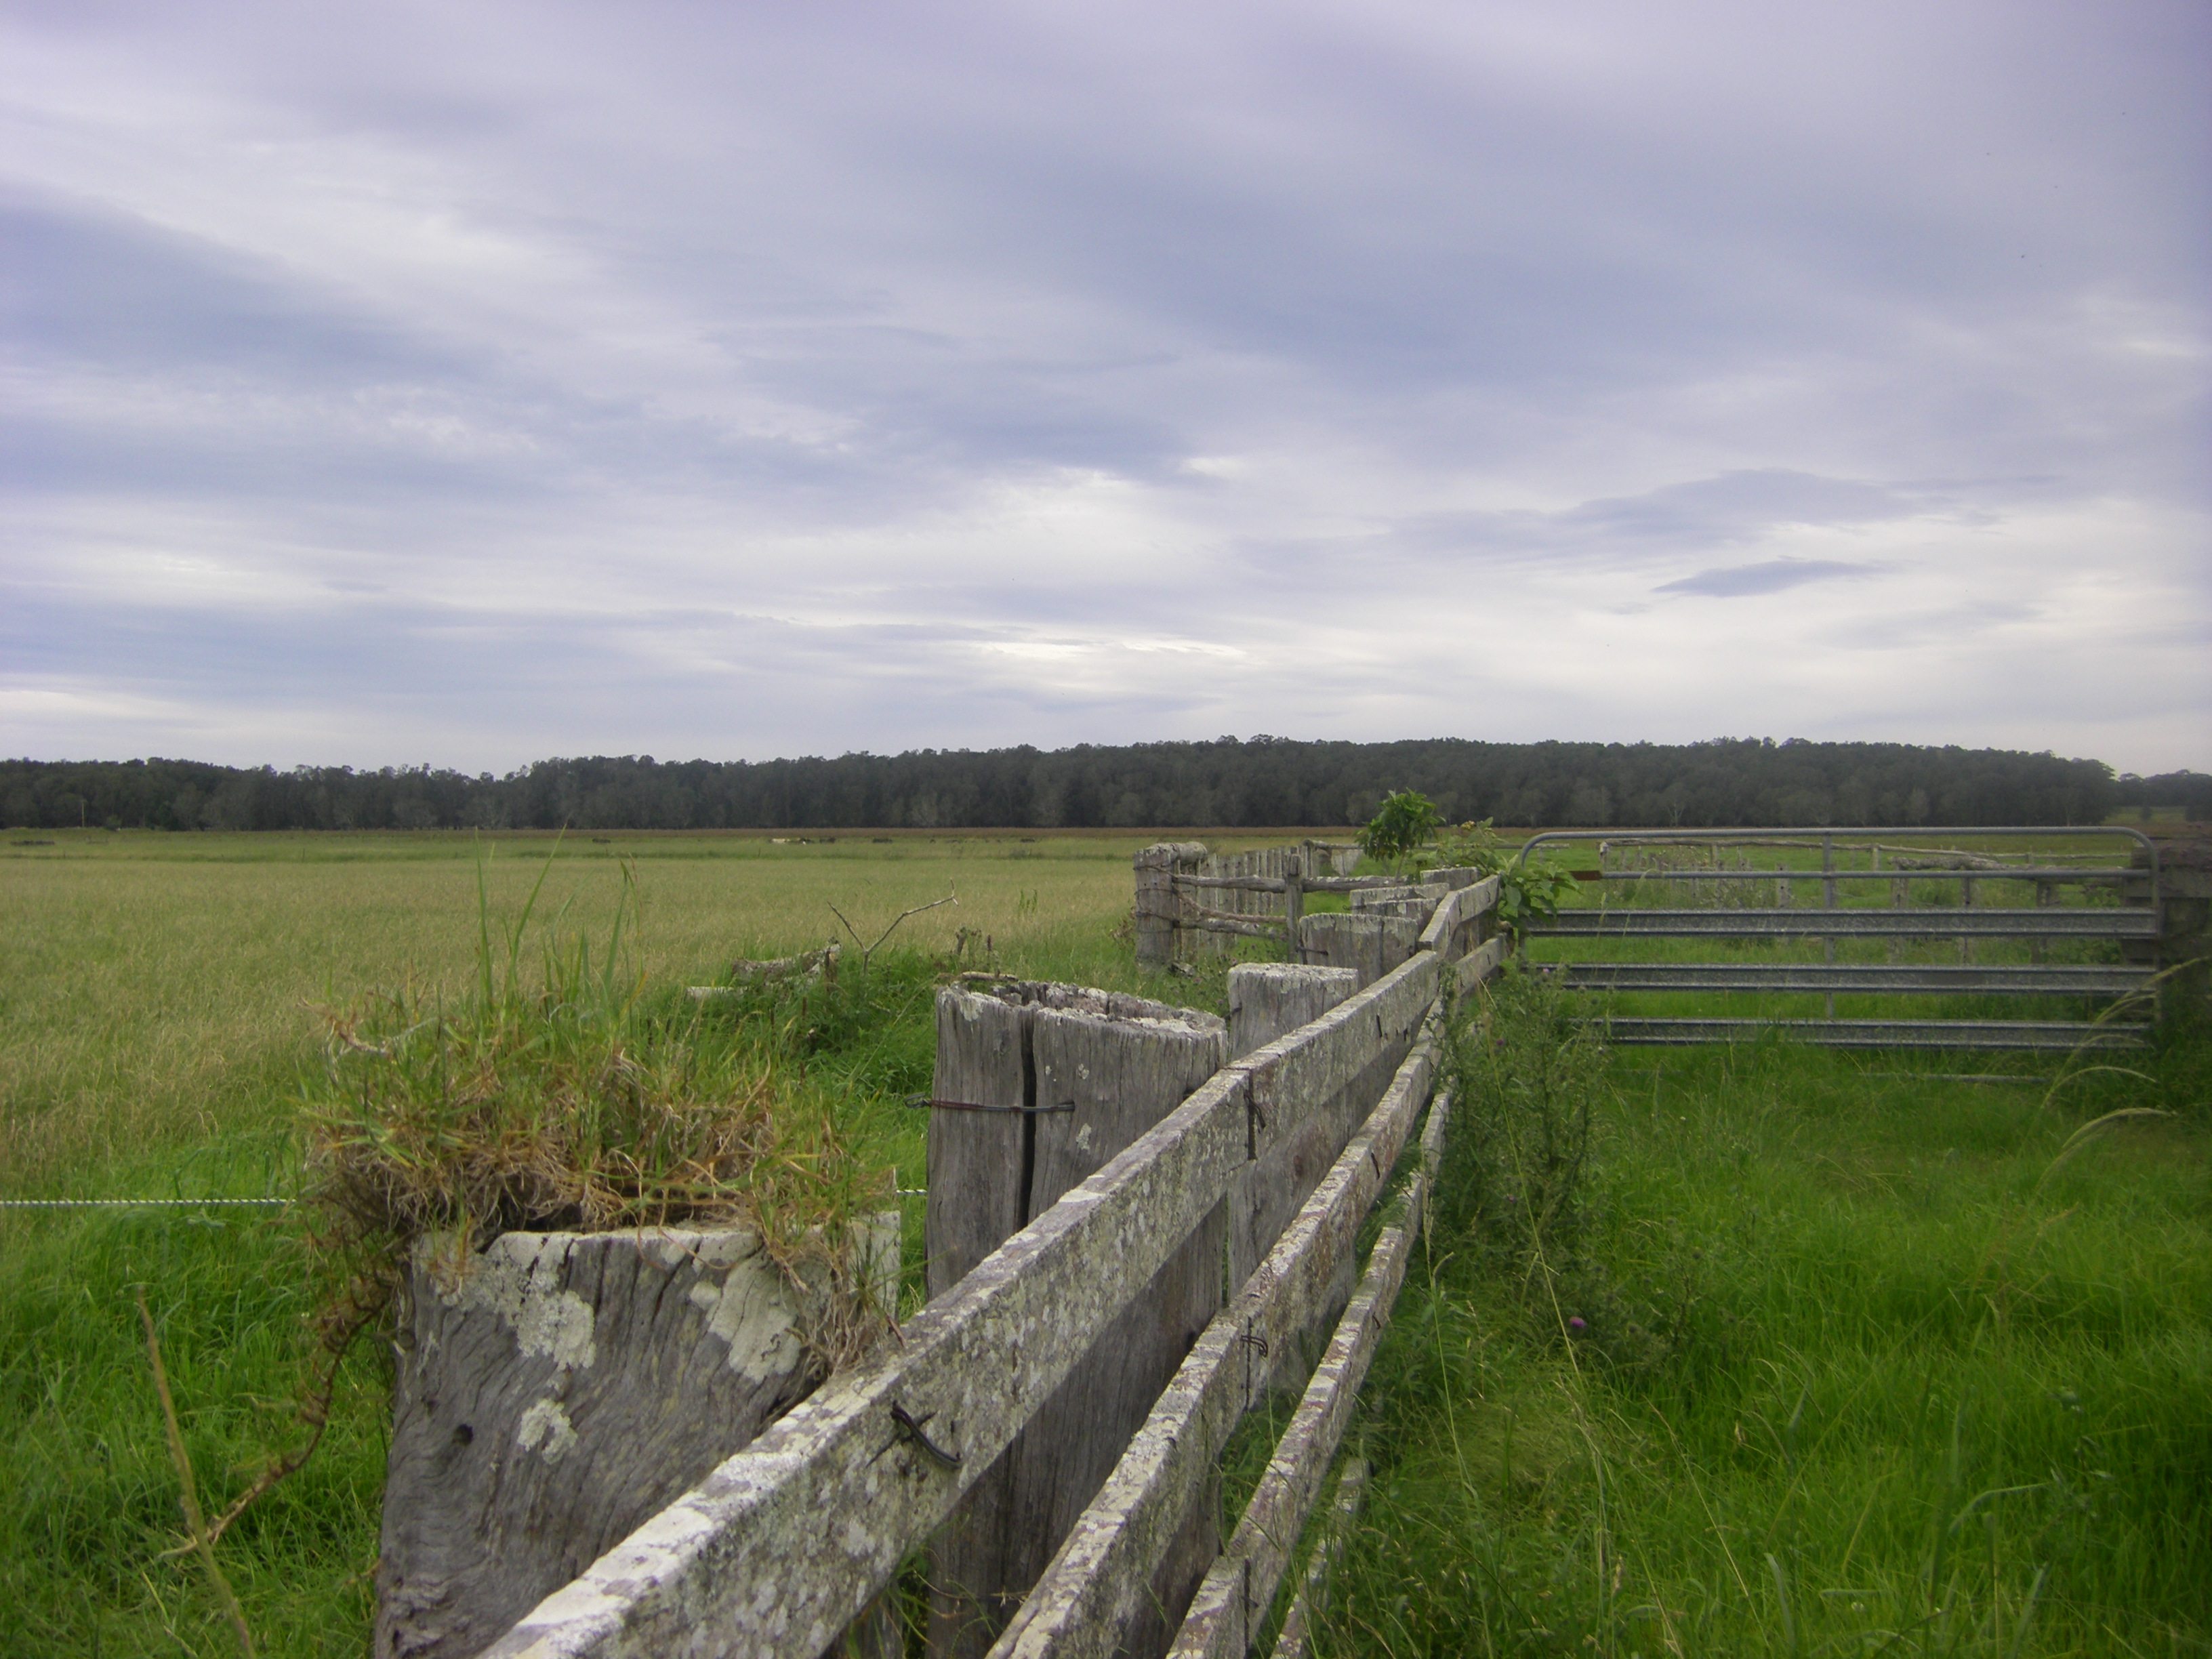 Gormley Farm Land near where Gormleys owned land. Belmore River NSW